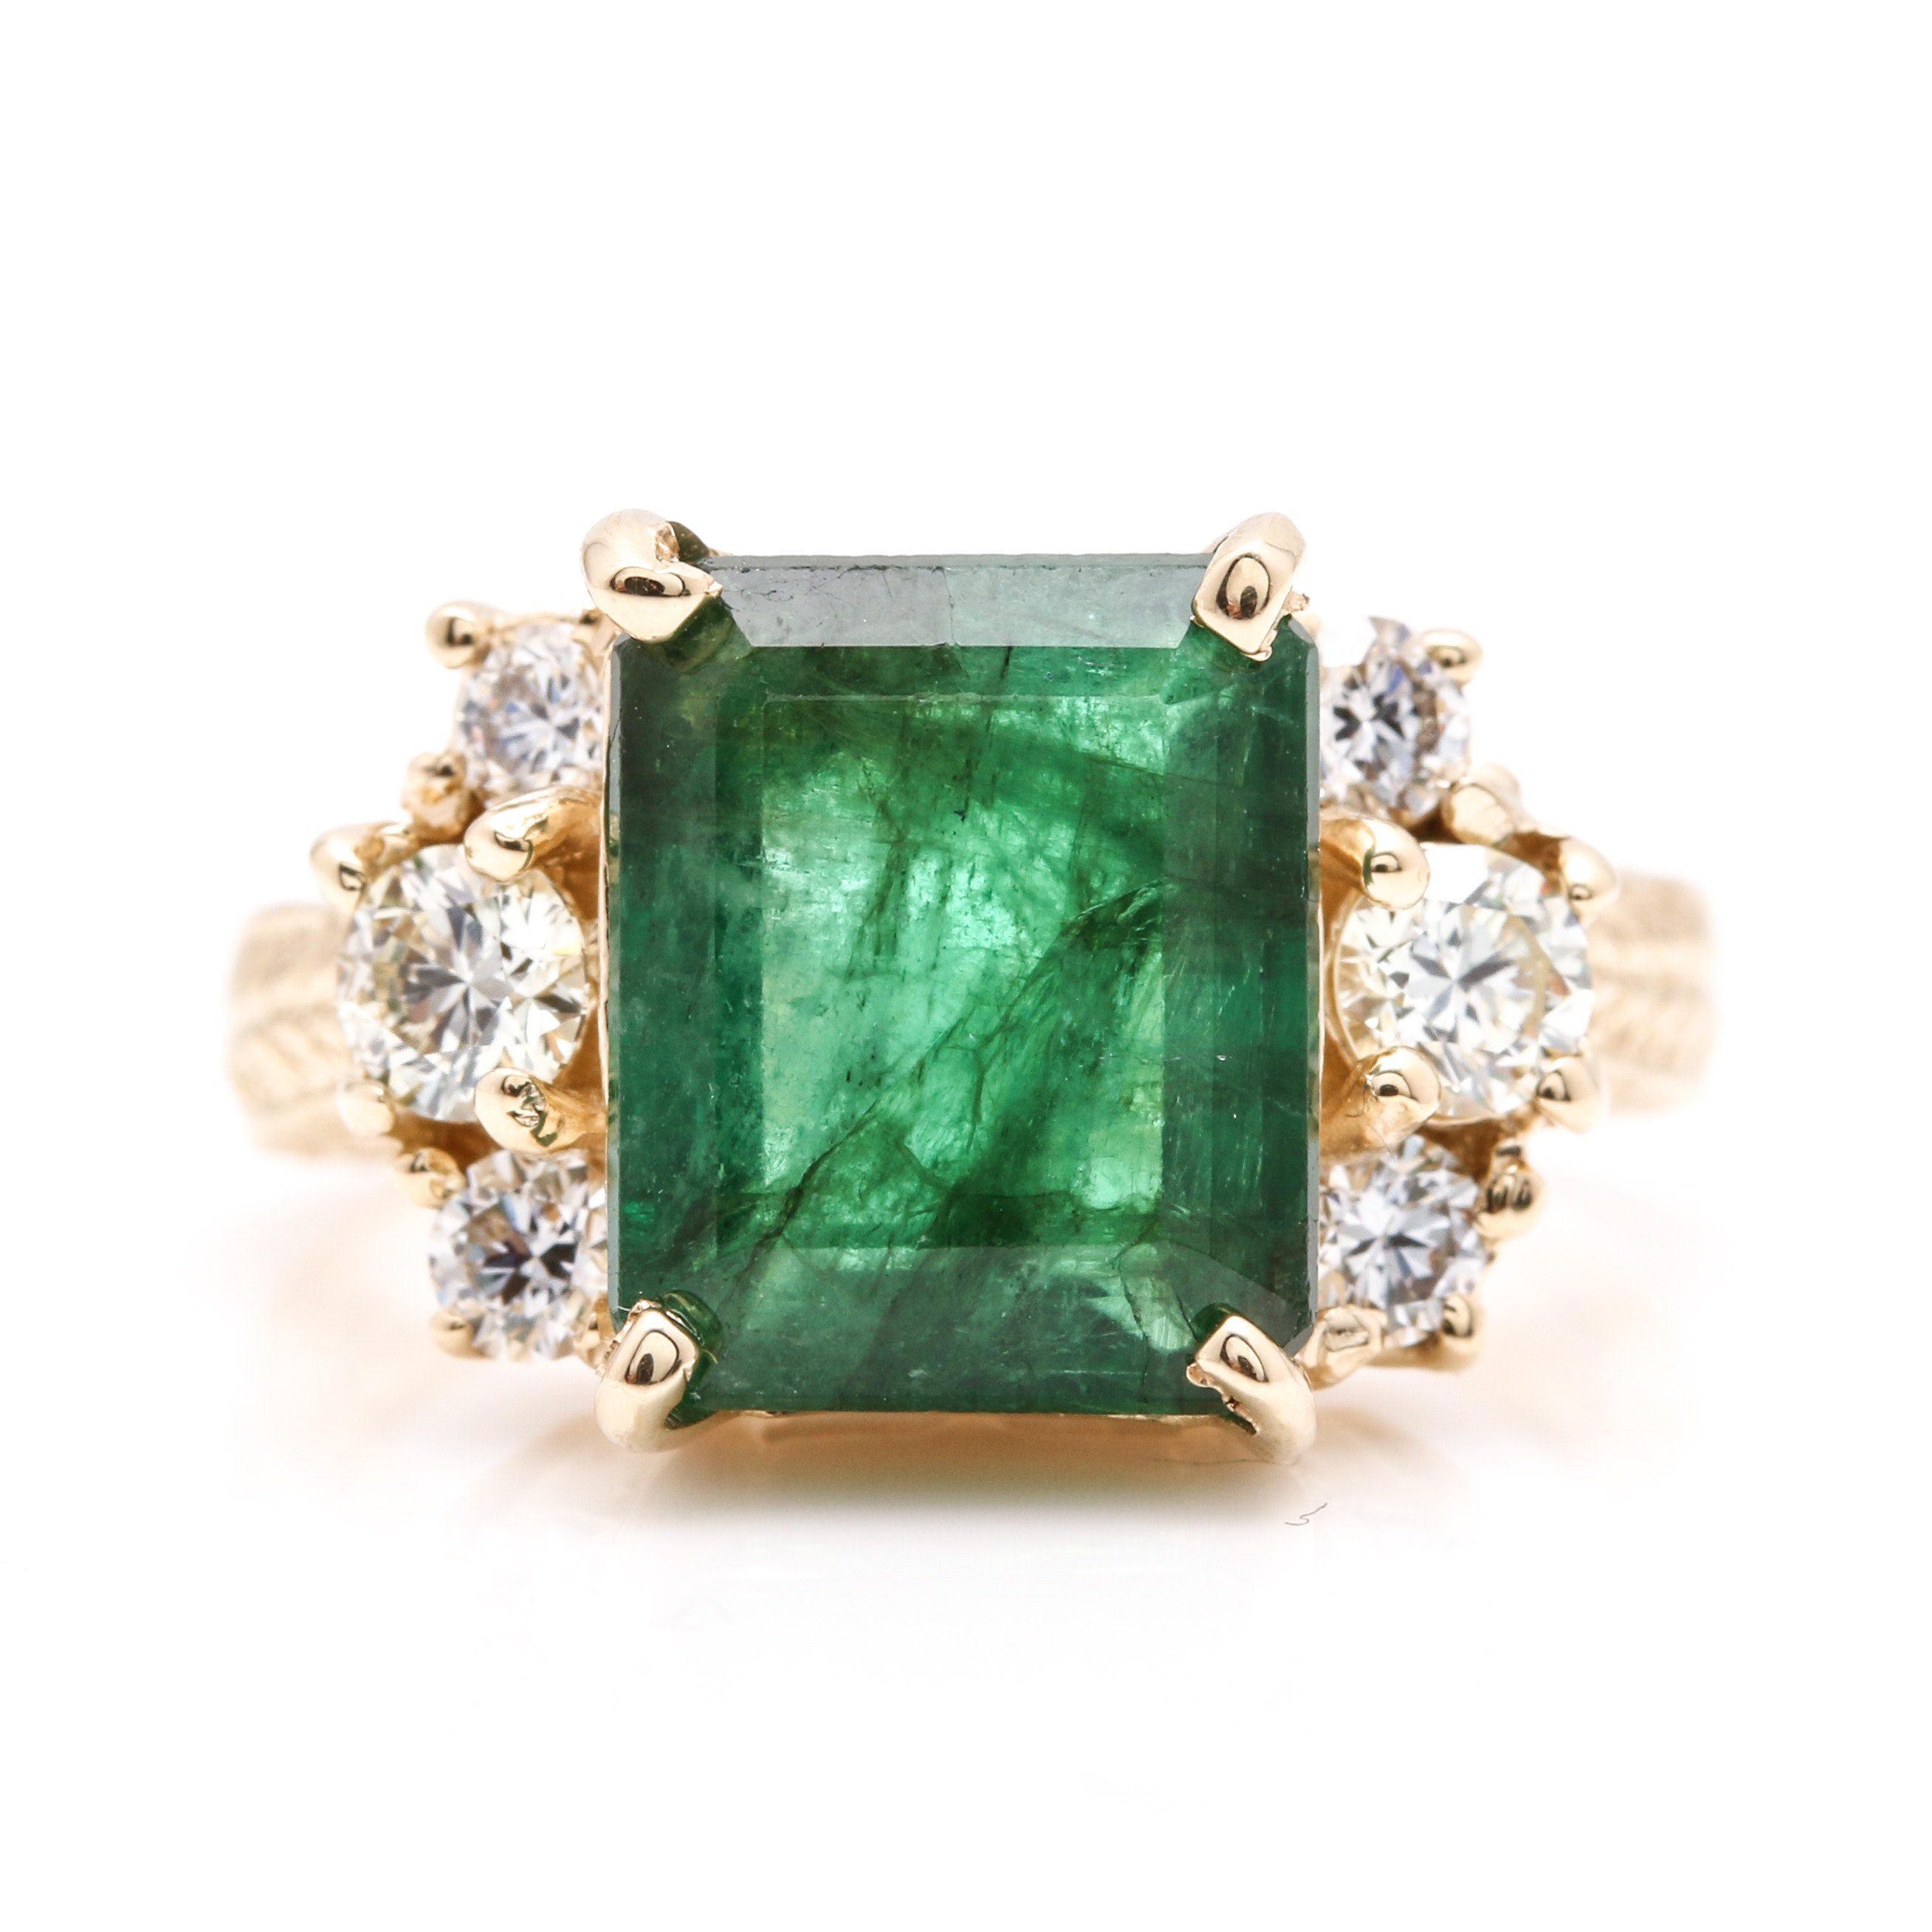 14K Yellow Gold 3.39 CT Emerald and Diamond Statement Ring